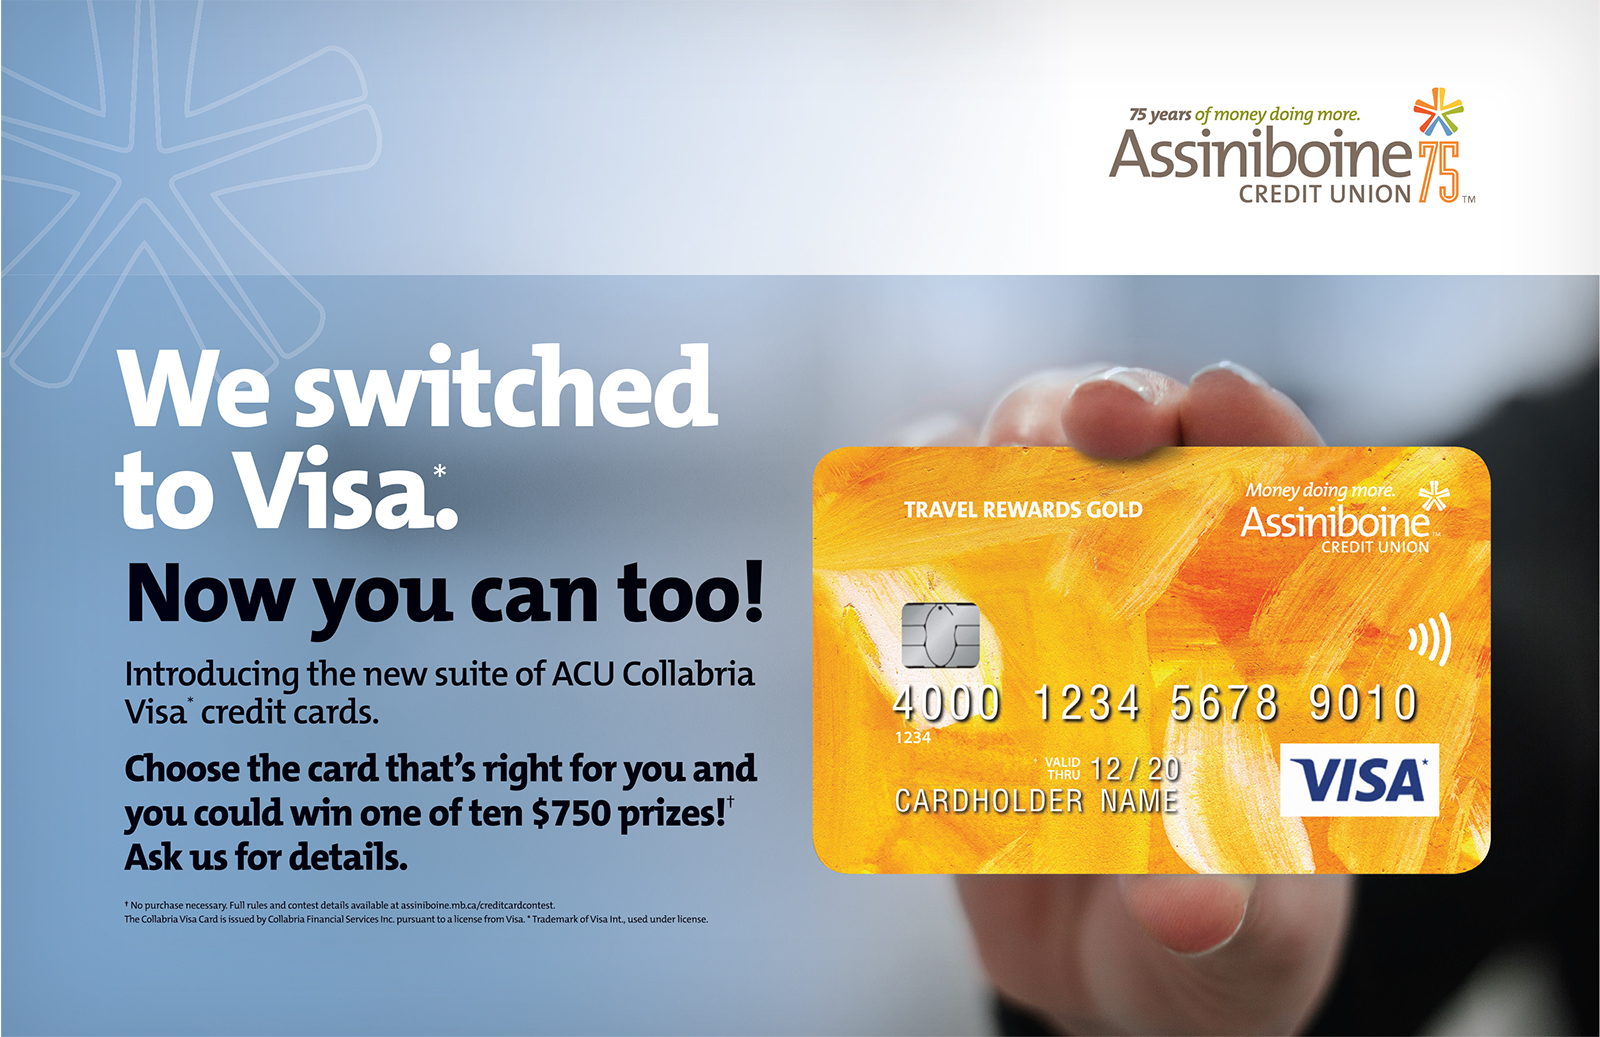 Someone's hand holding a bright yellow VISA card.